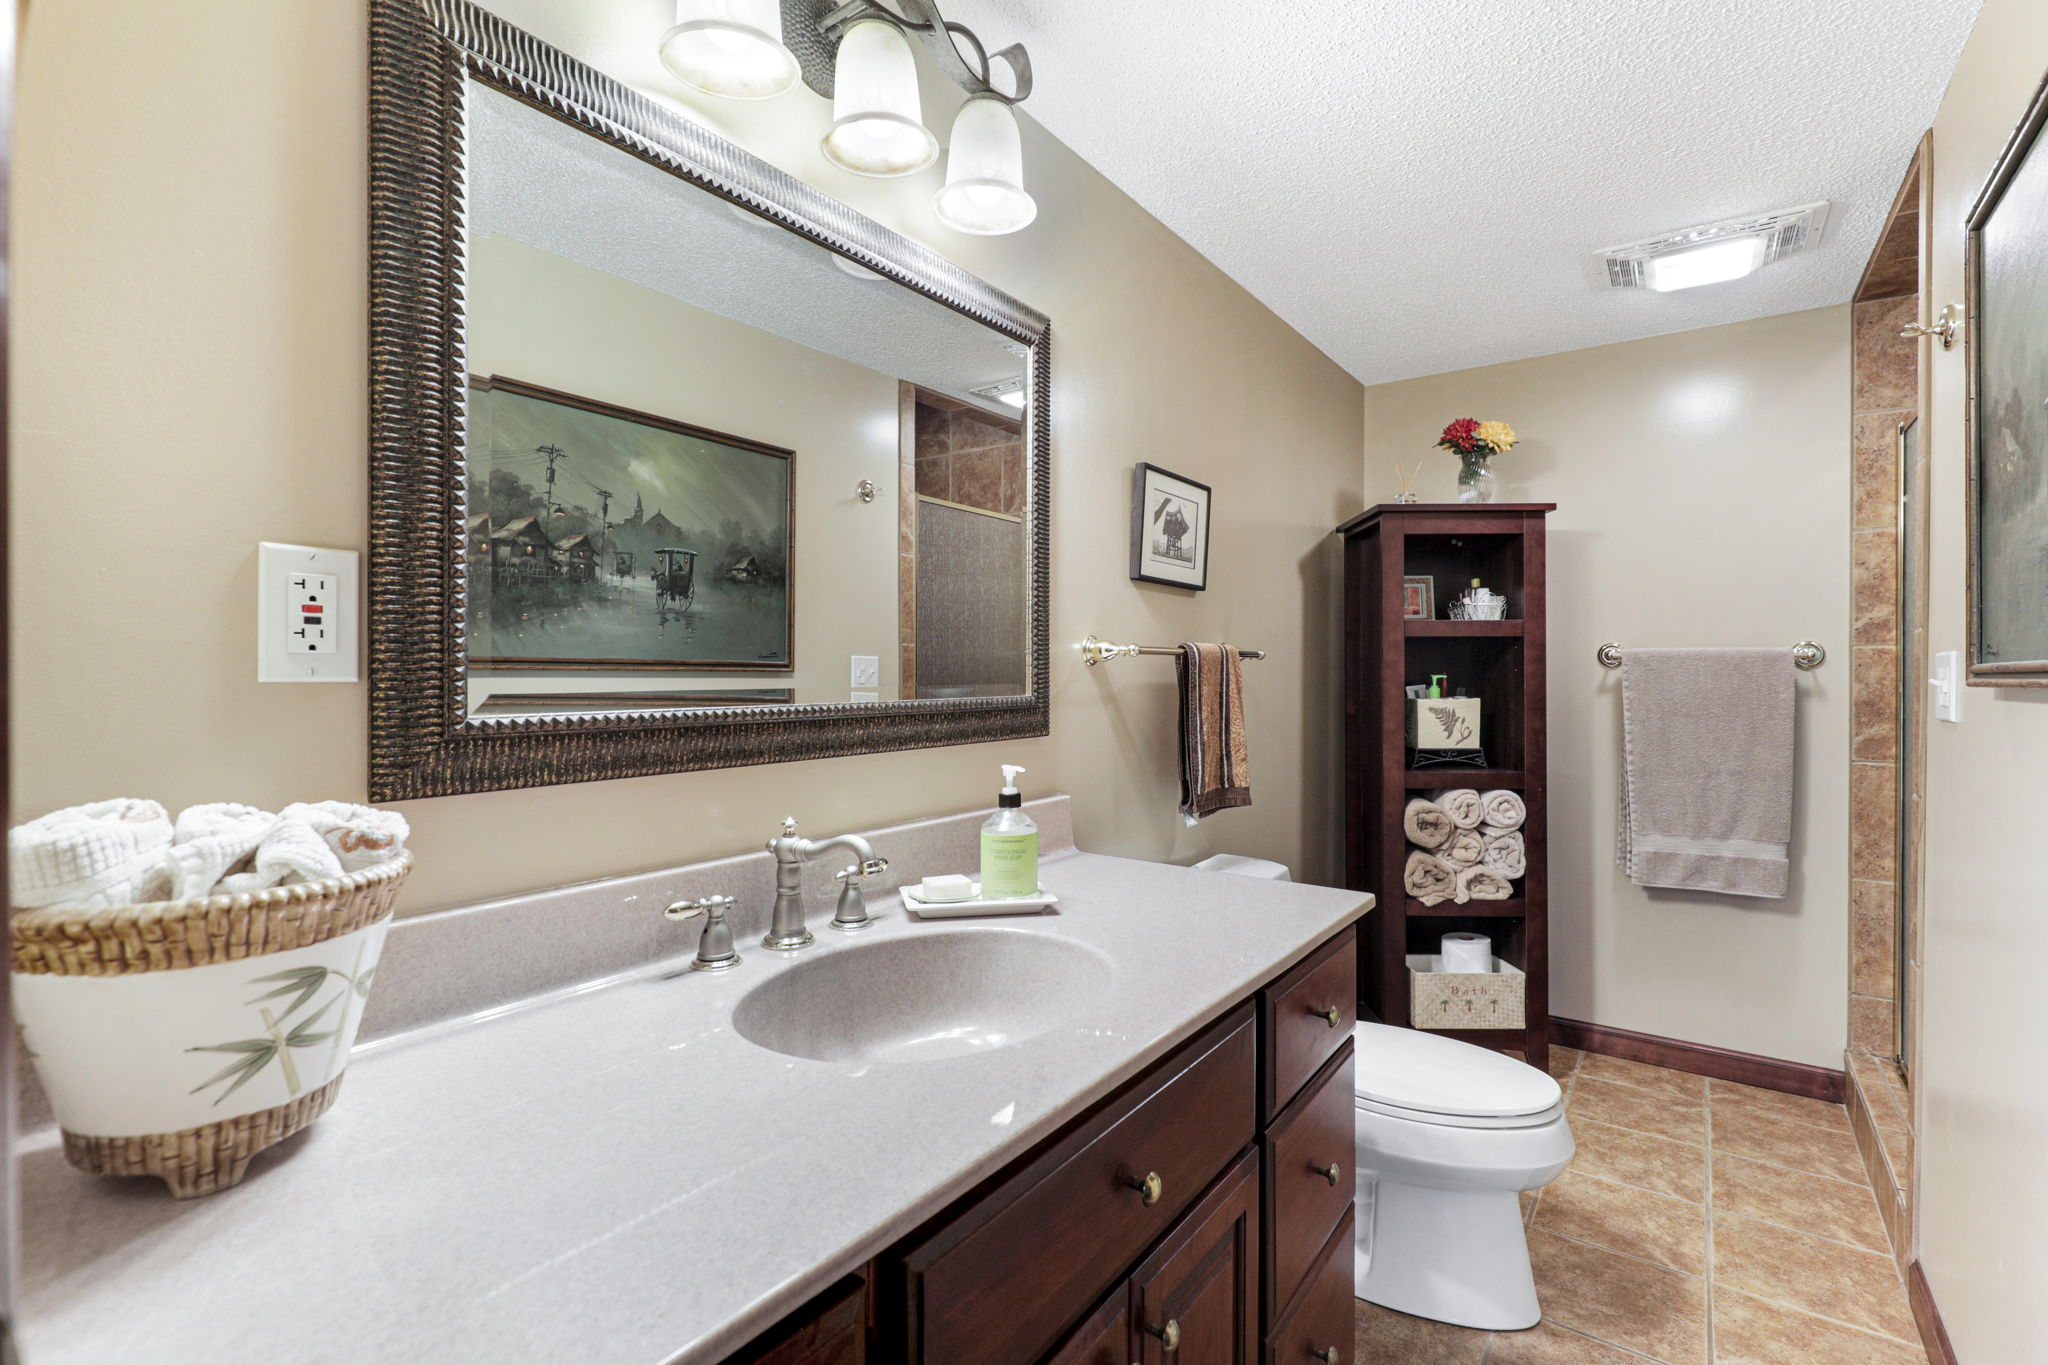 6652 Clearwater Creek Dr, Lino Lakes, MN 55038, USA Photo 40